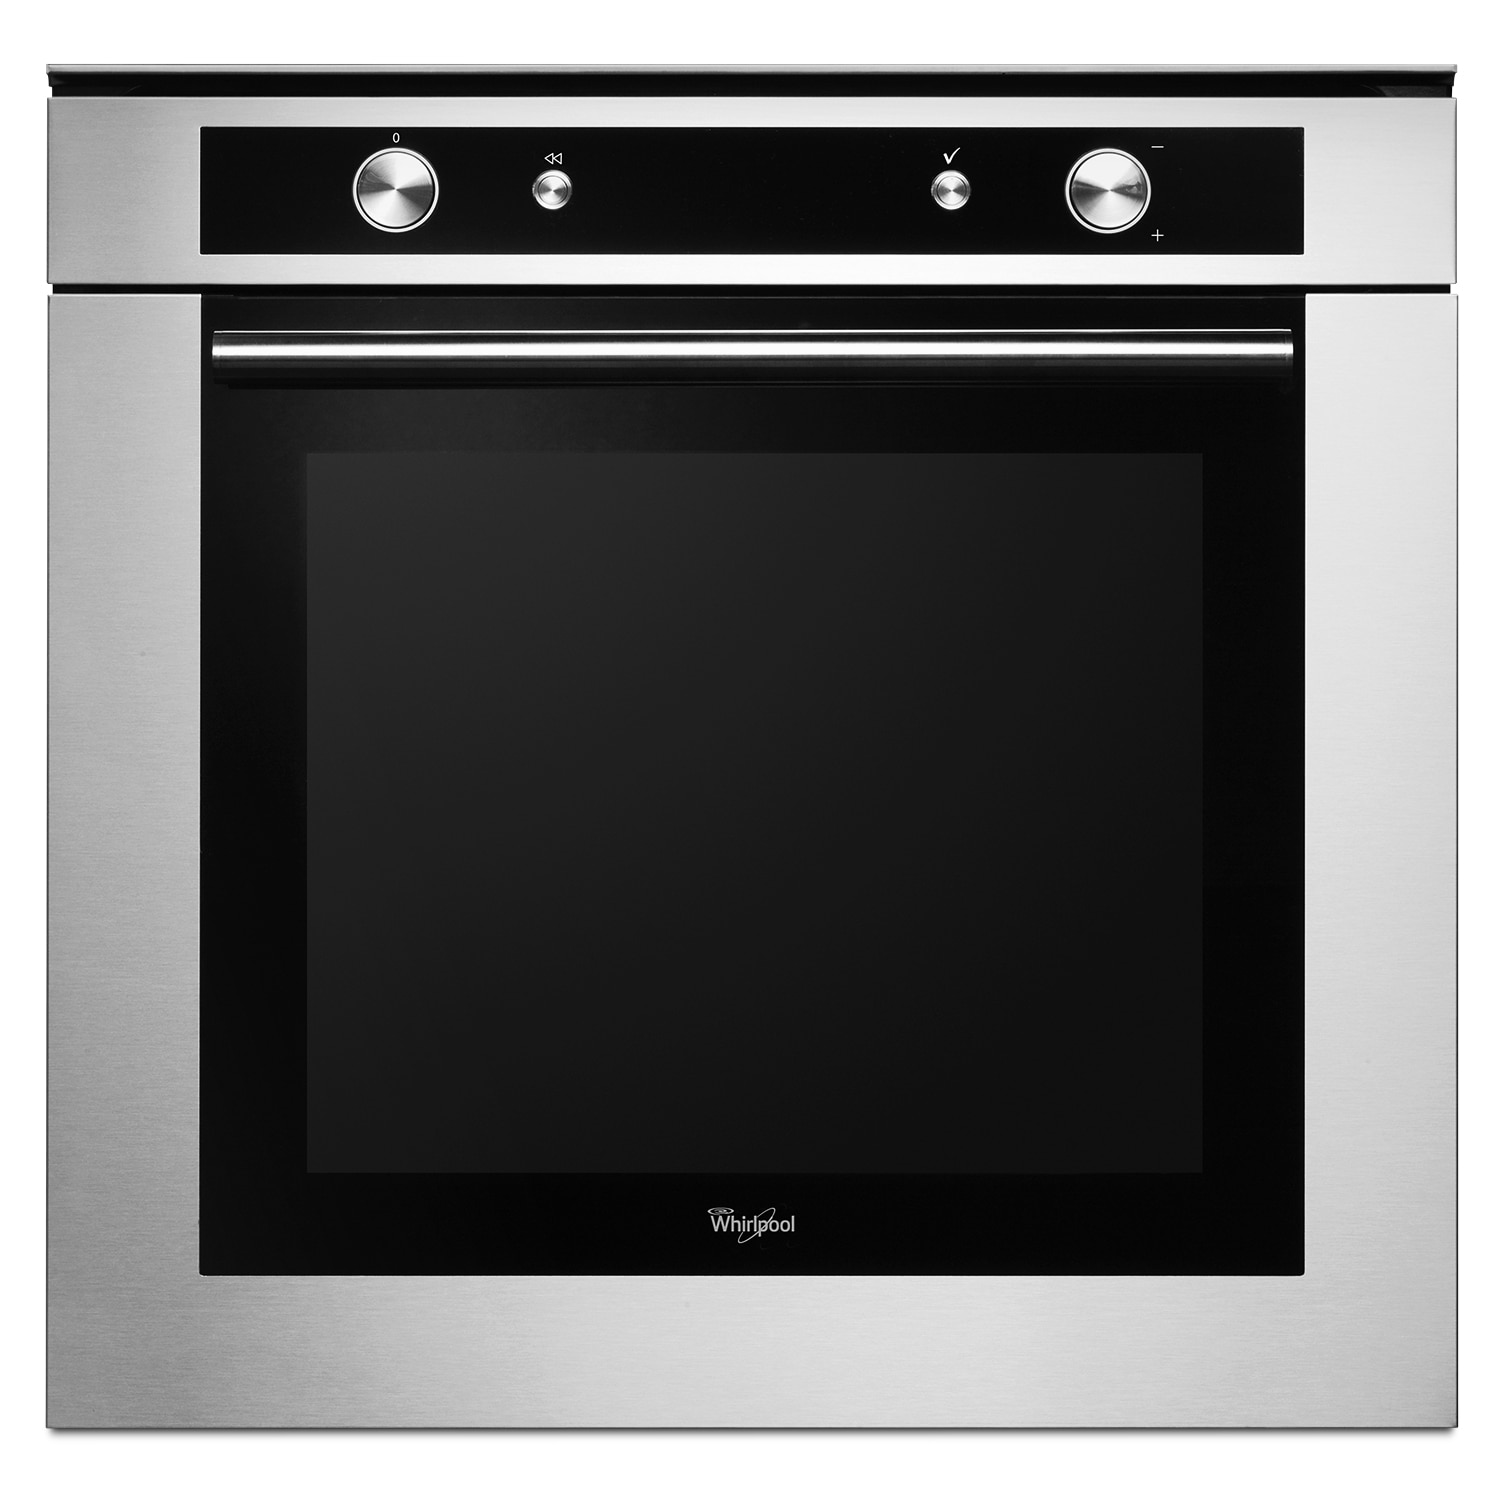 Whirlpool 24 Inch Convection Wall Oven The Brick